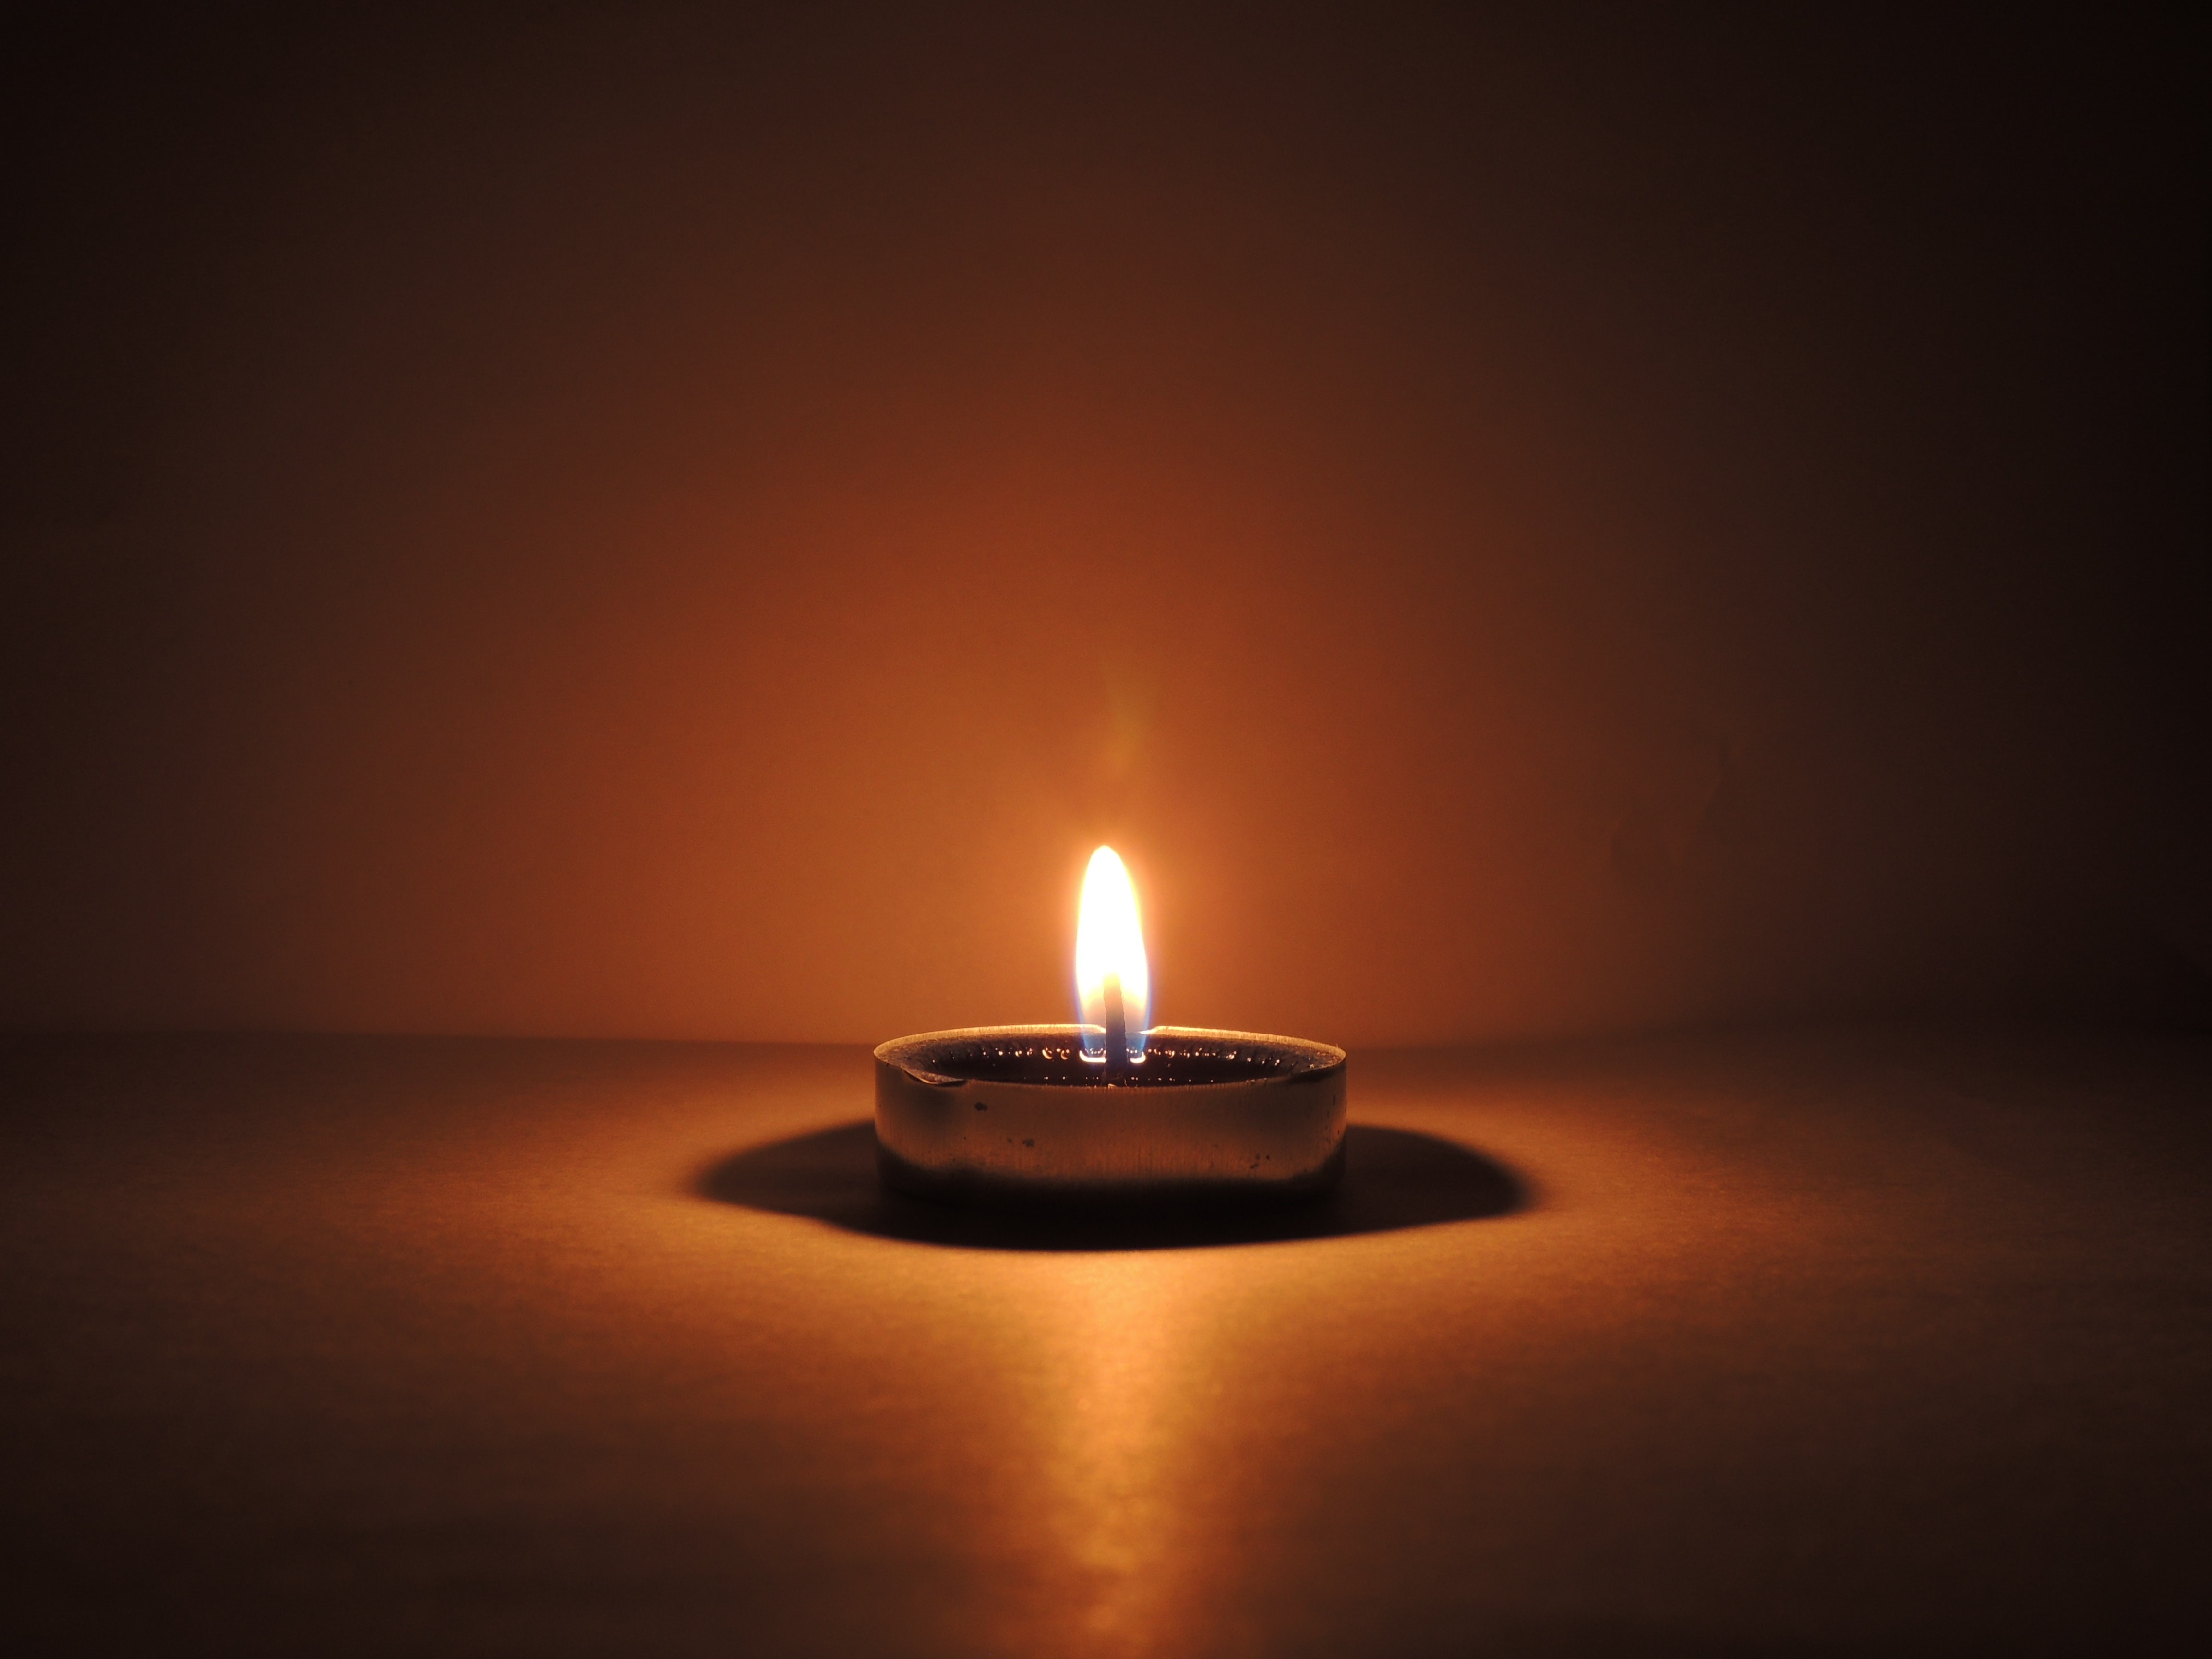 Image of a candle illuminating a dark room